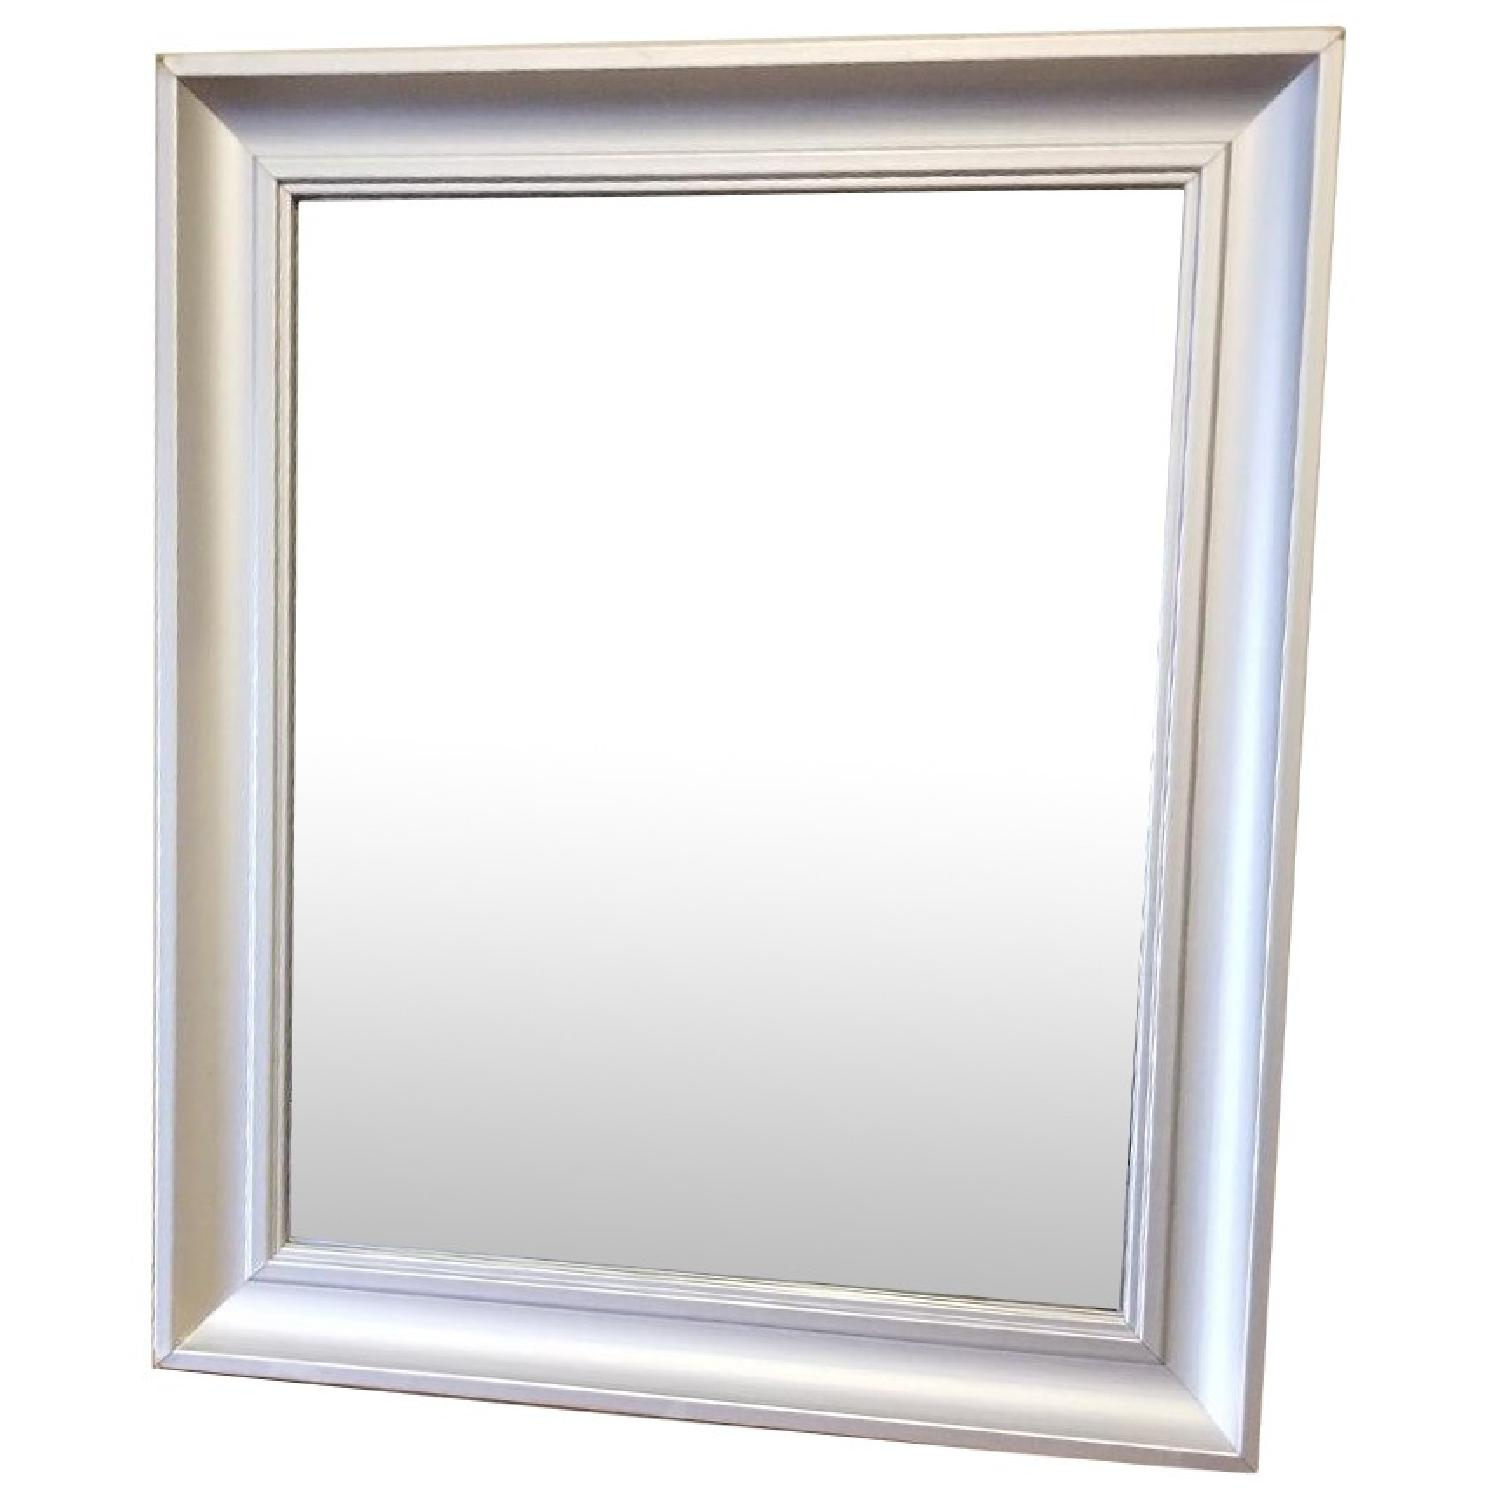 Silver Frame Wall/Table Mirror